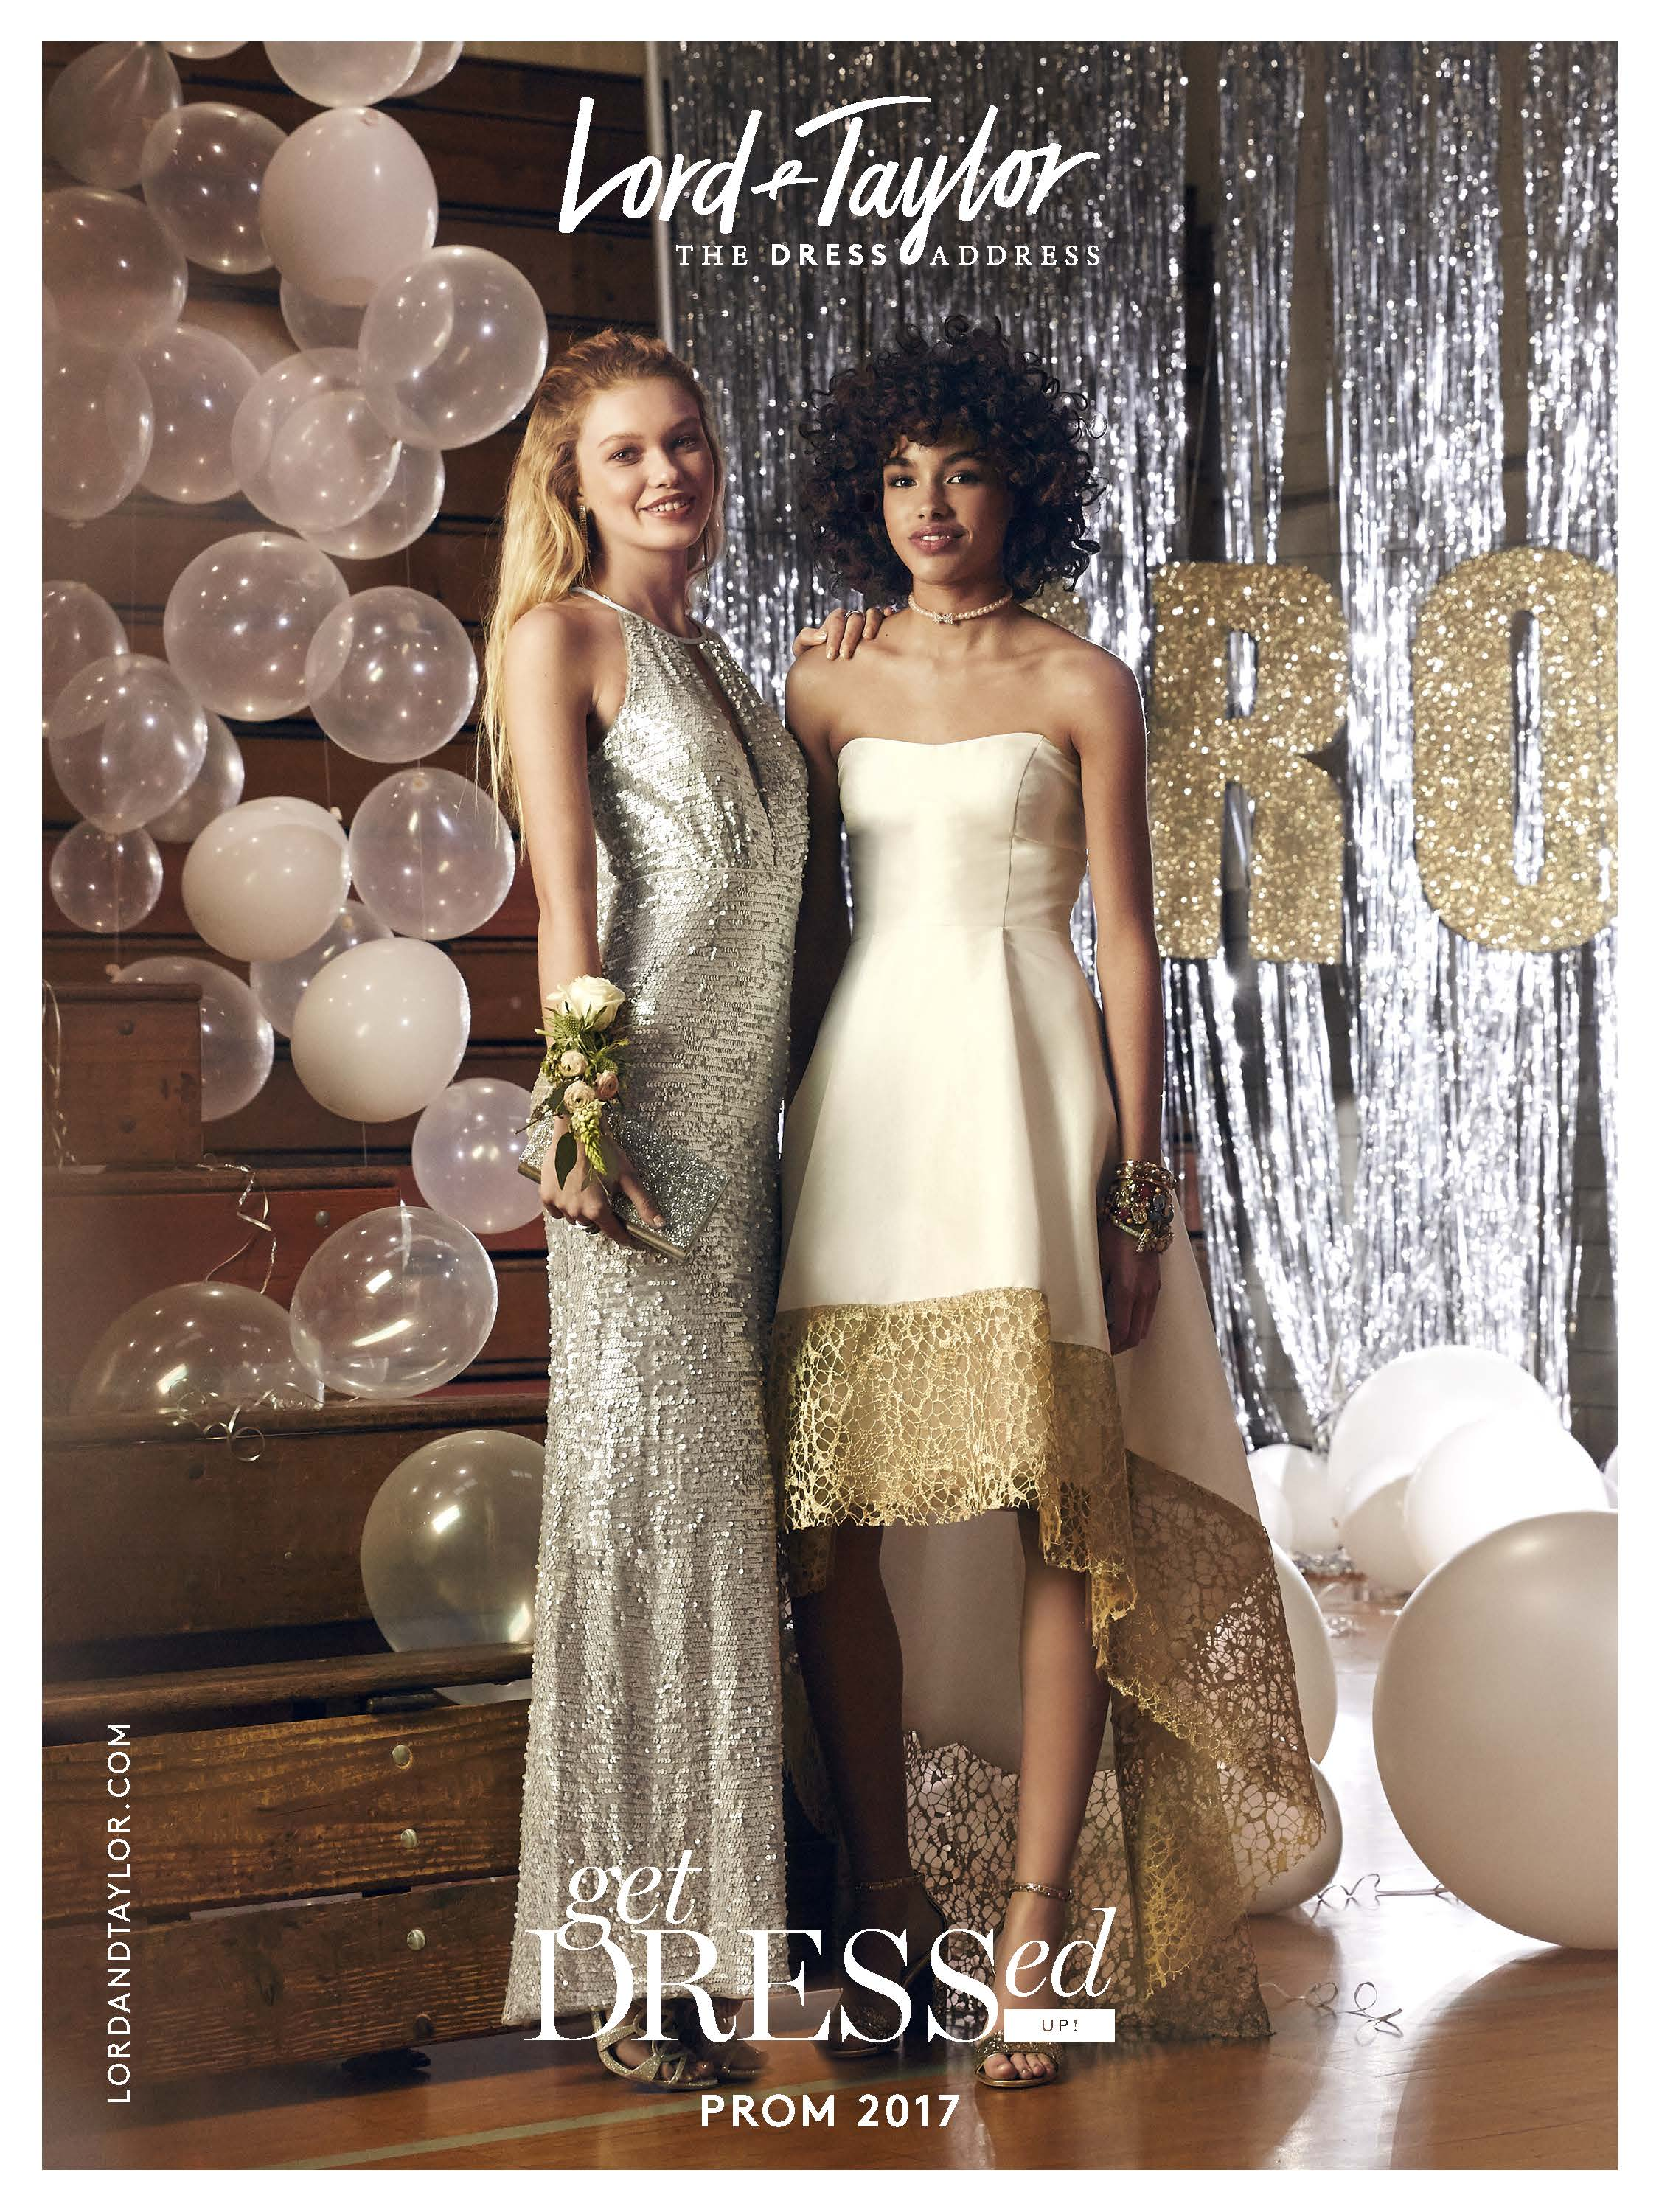 Examplary One Day Off Prom Dresses On March Lord Taylor Prom Fashion Show At Lord Taylor Events Dulles Town Center Lord Wedding Guests Lord Taylor Dresses Department Store Taylor Dresses Take Advantag wedding dress Lord  Taylor Dresses